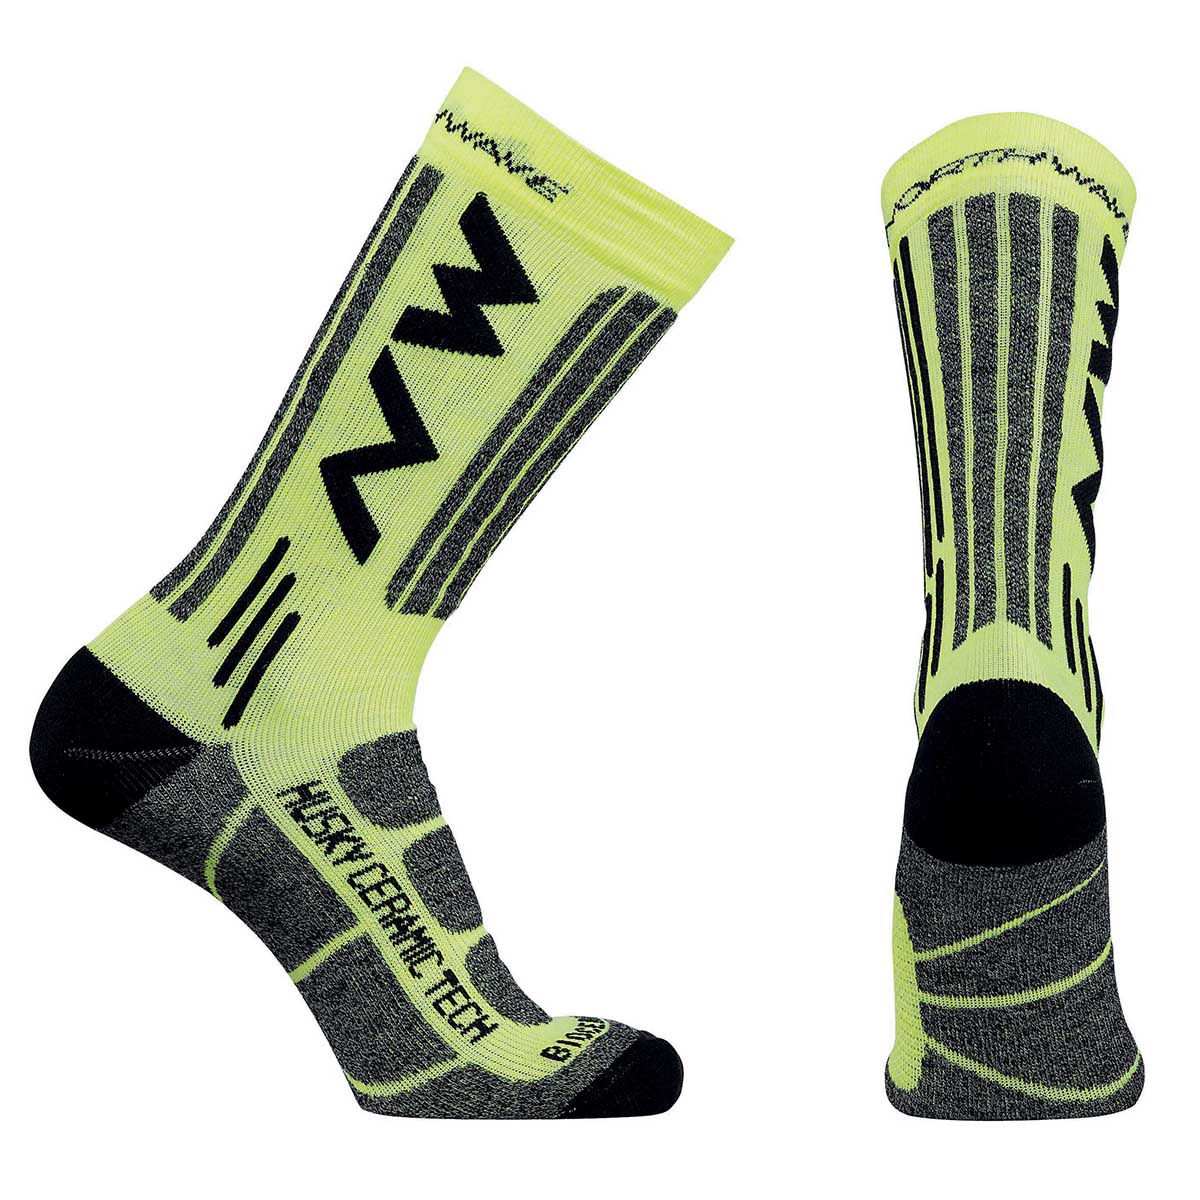 Northwave - Husky Ceramic Tech 2 High Socks - S Jaune  Chaussettes